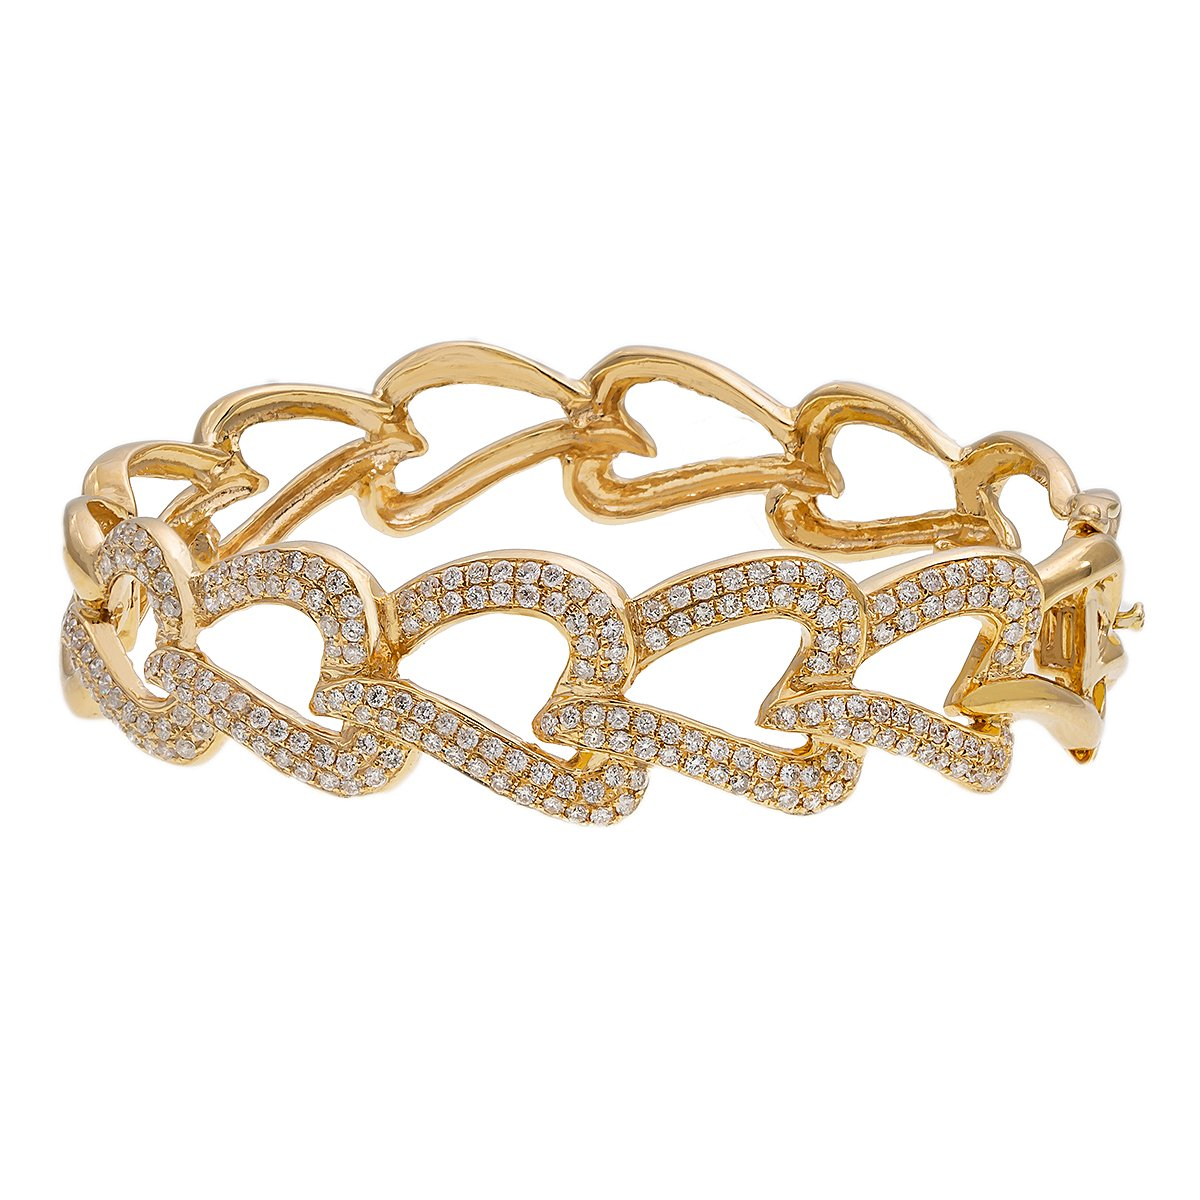 14K Yellow Gold Women's Heart Bracelet With 2.35 CT Diamonds